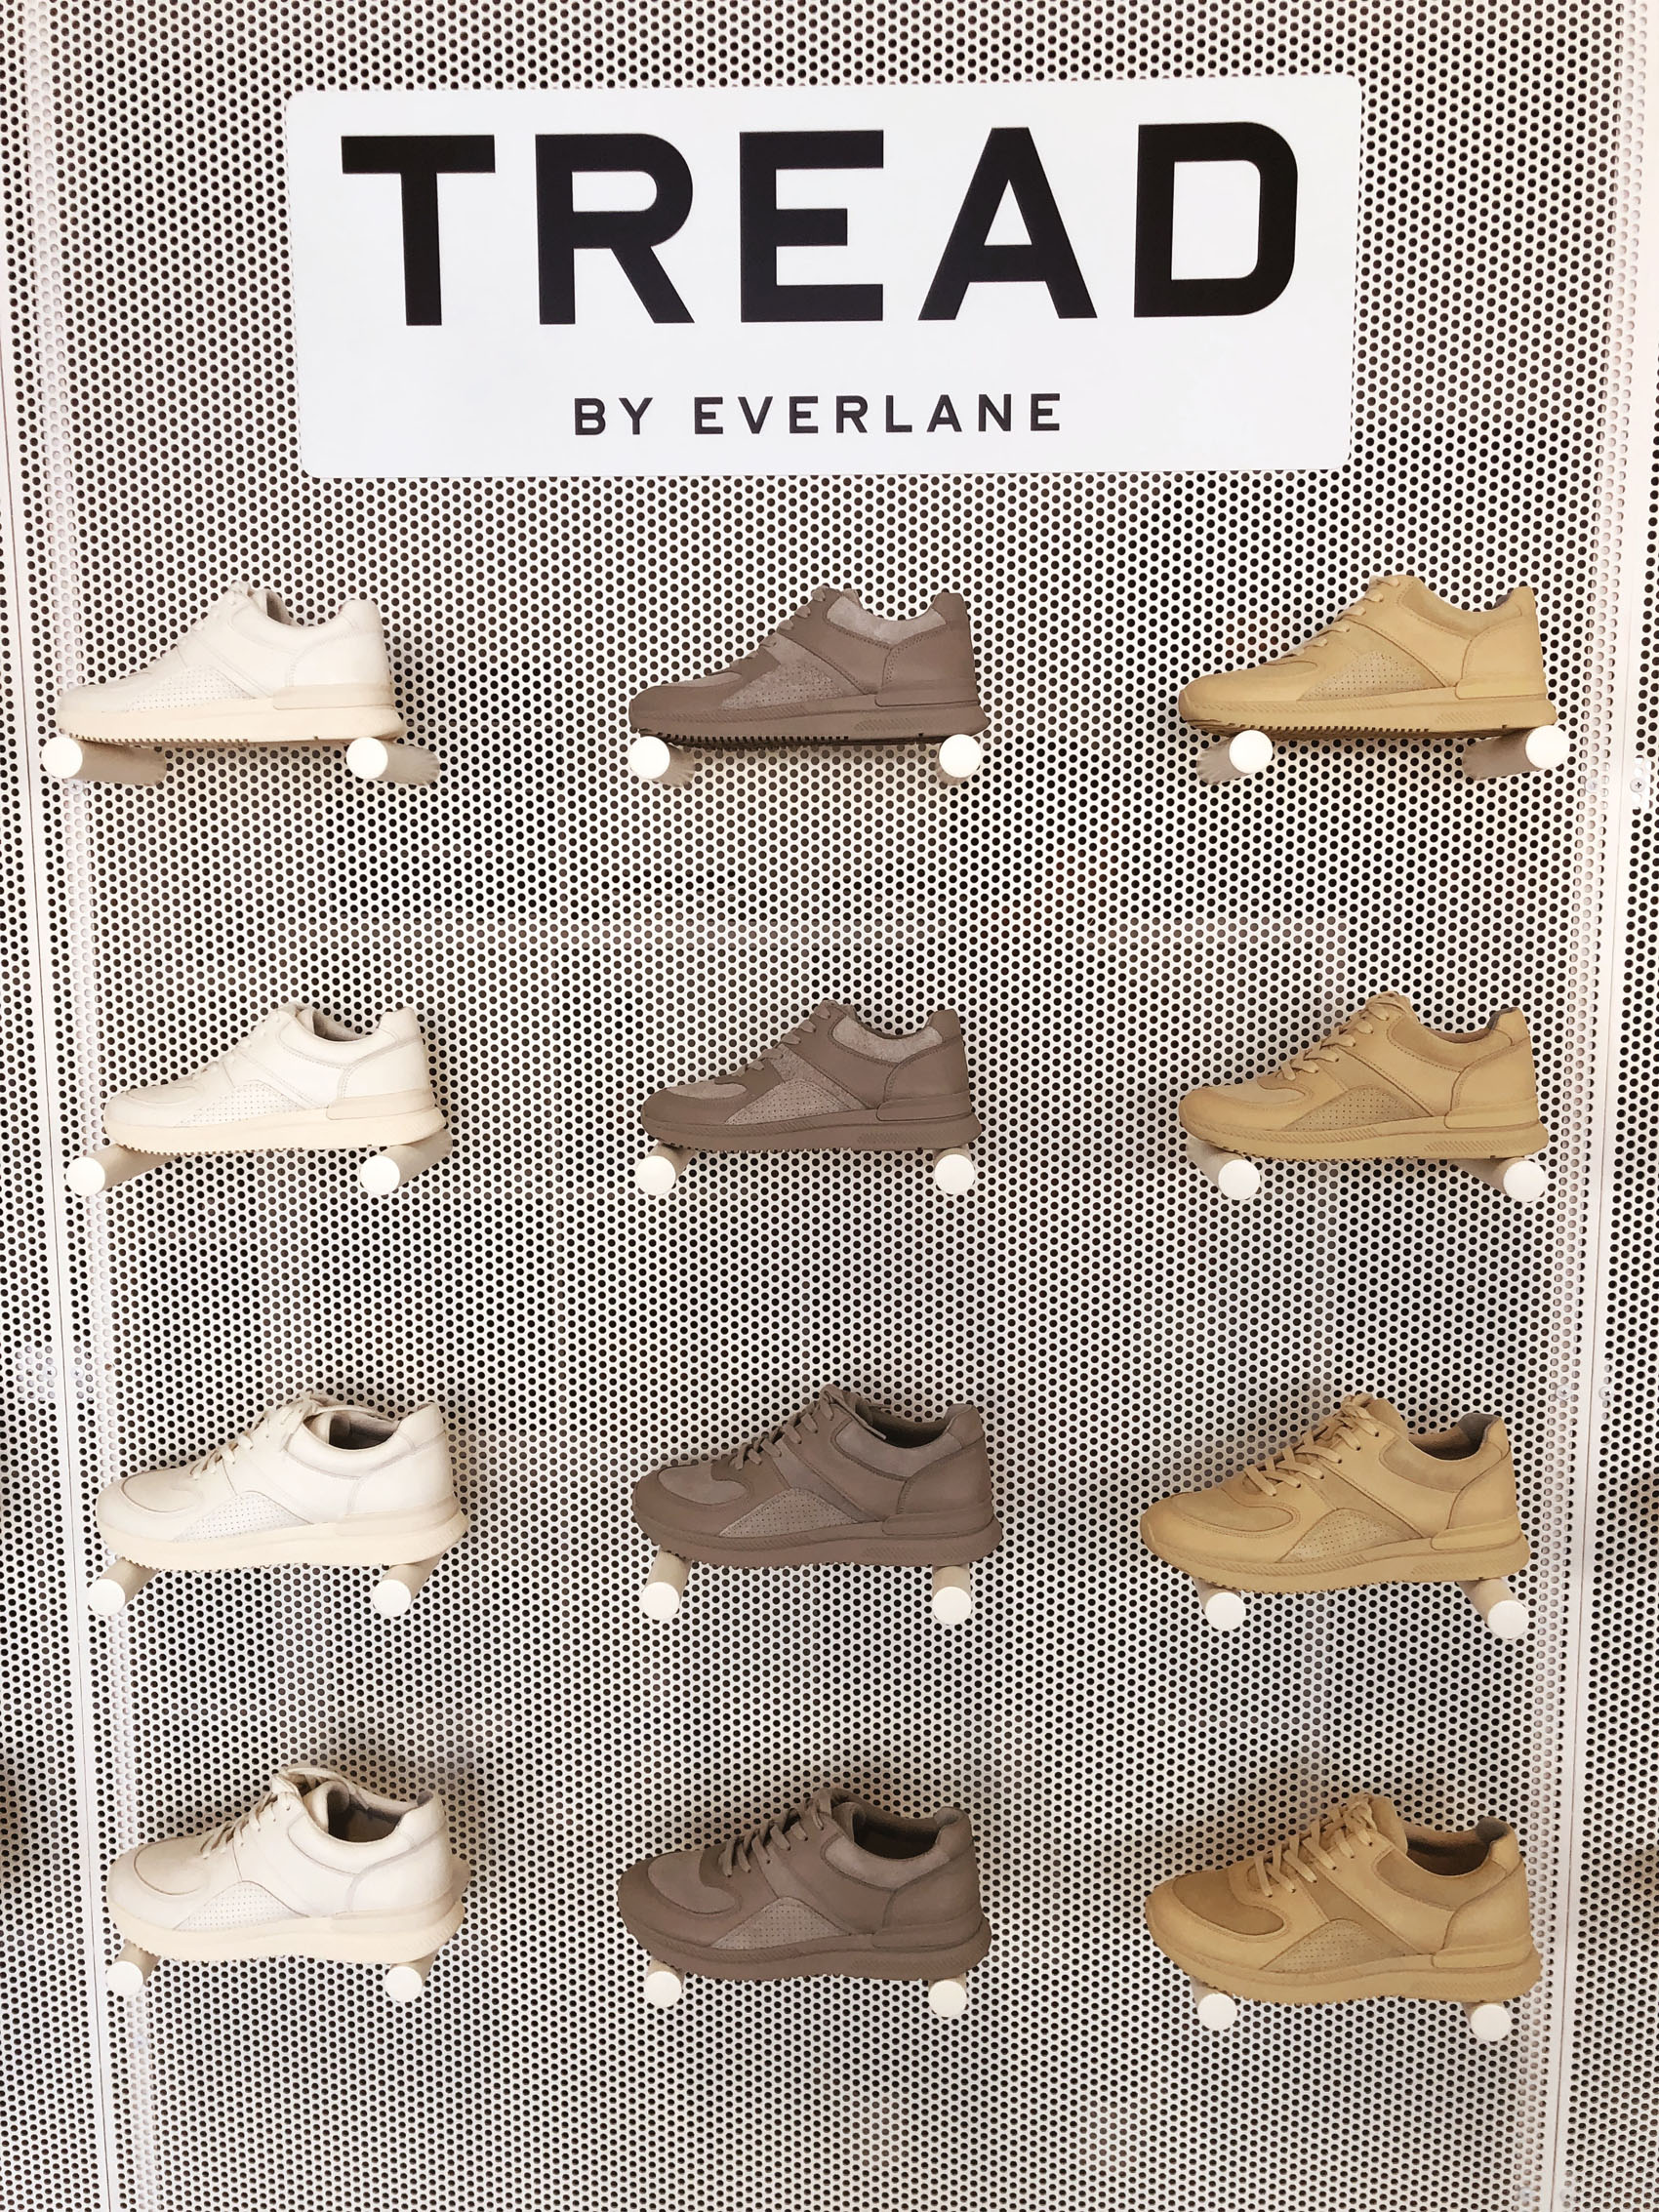 Tread By Everlane Sneakers